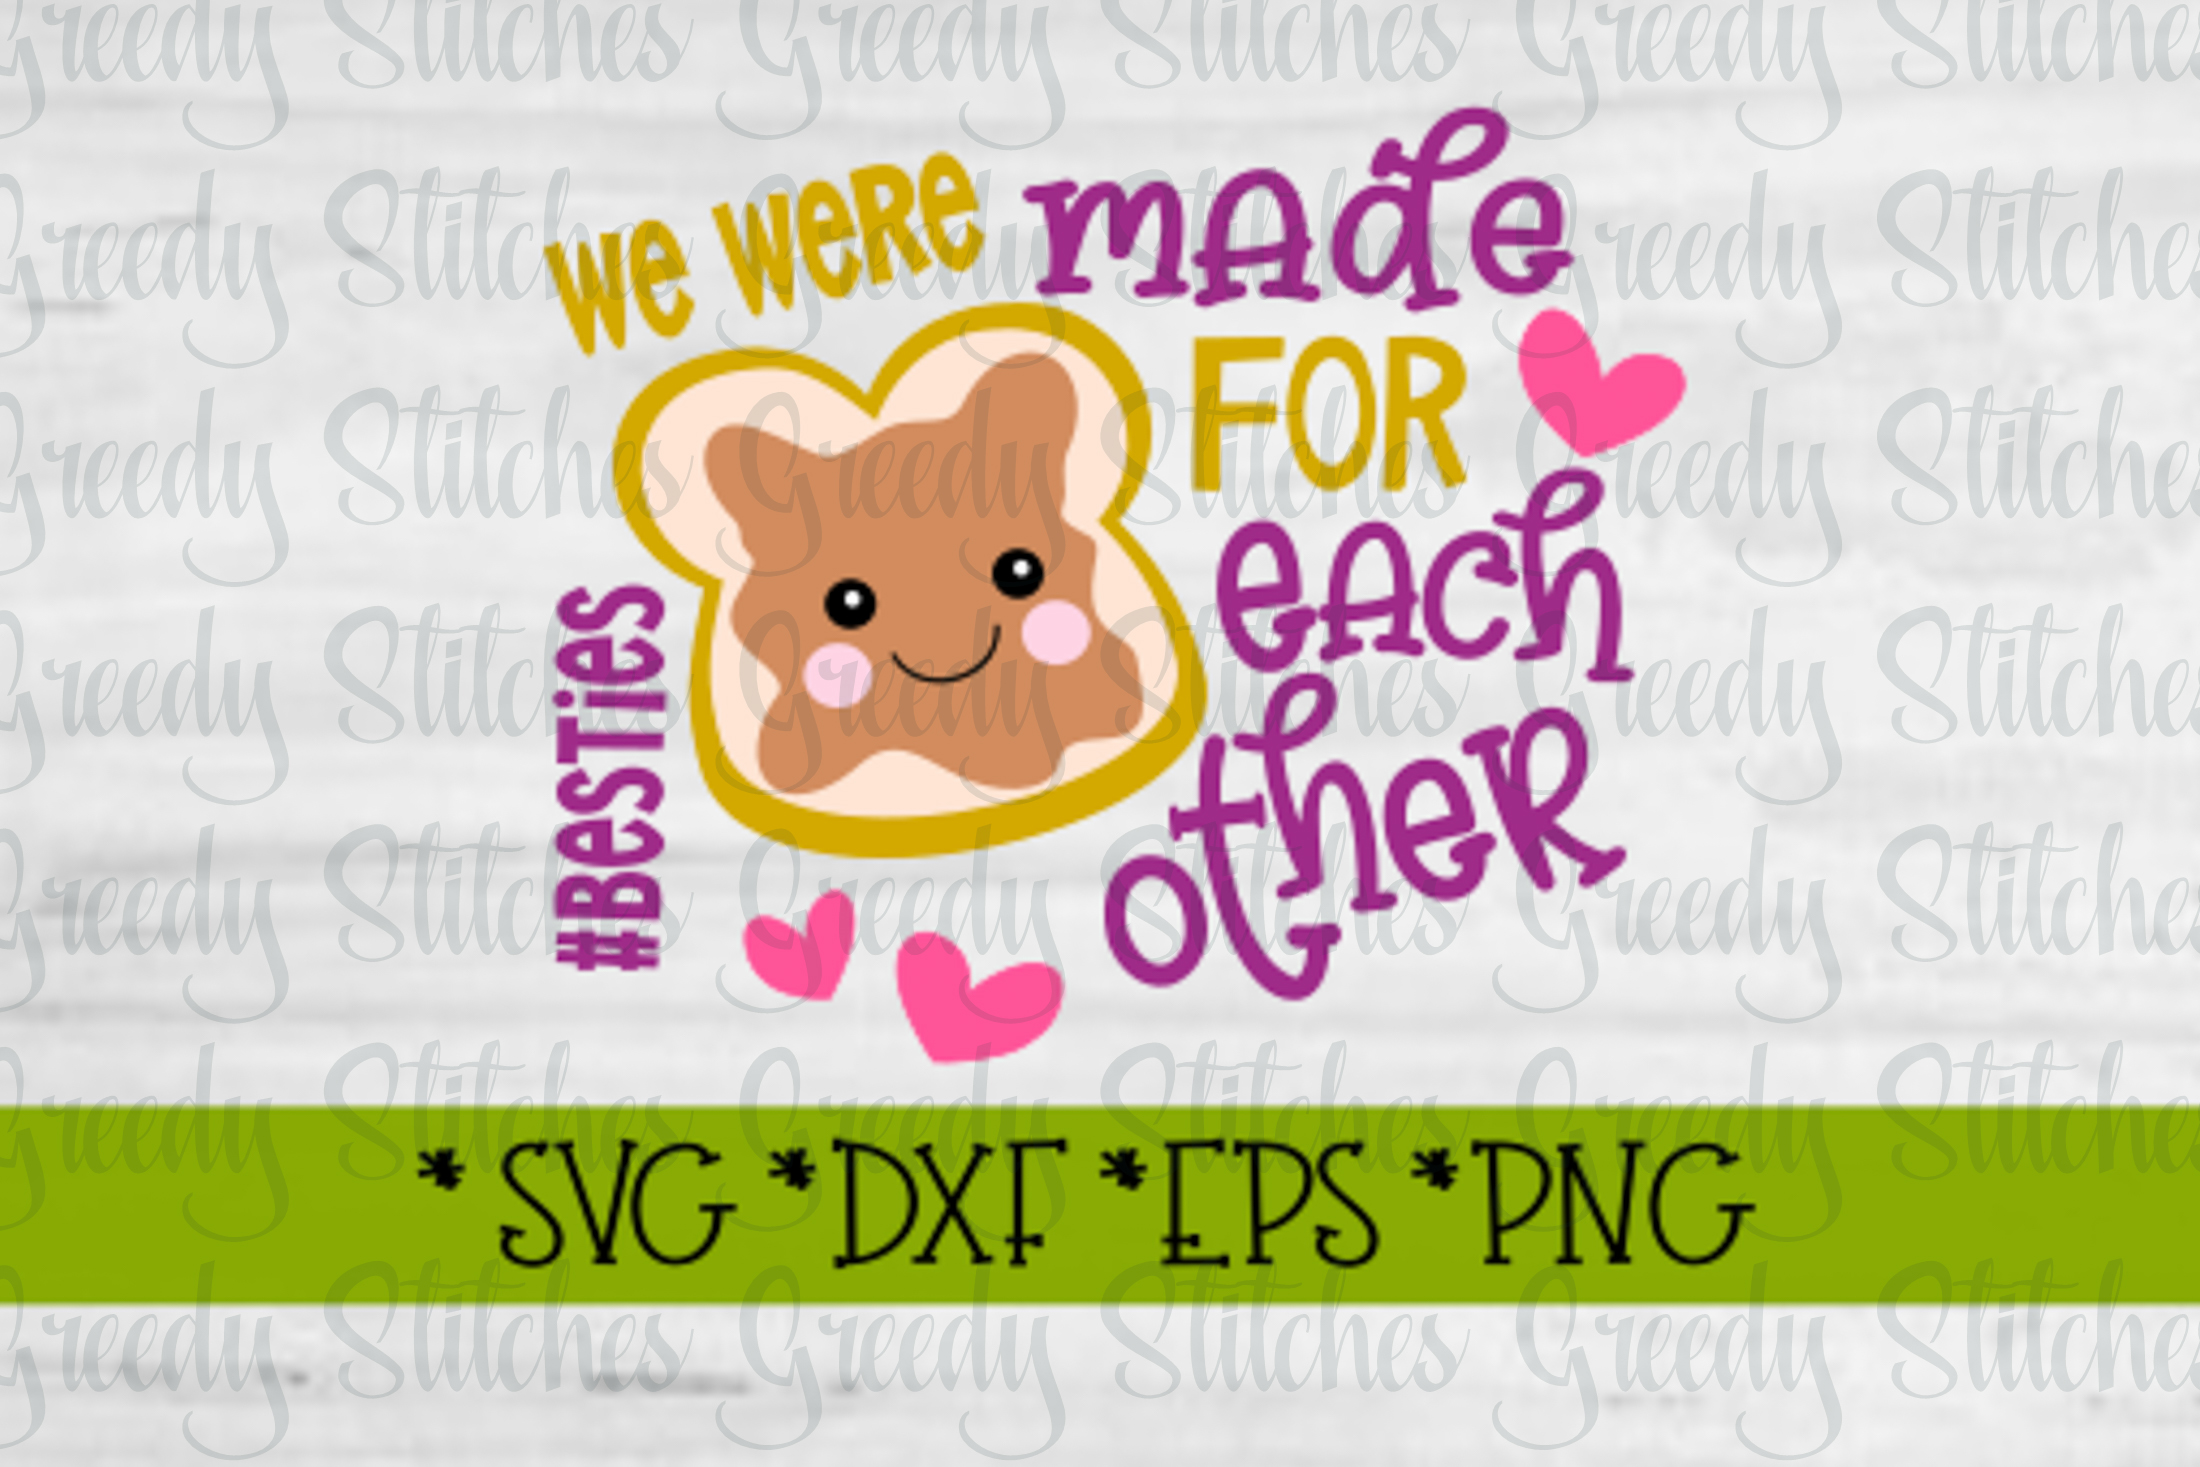 Peanut Butter & Jelly SVG DXF EPS PNG | Best Friends SVG DXF example image 19